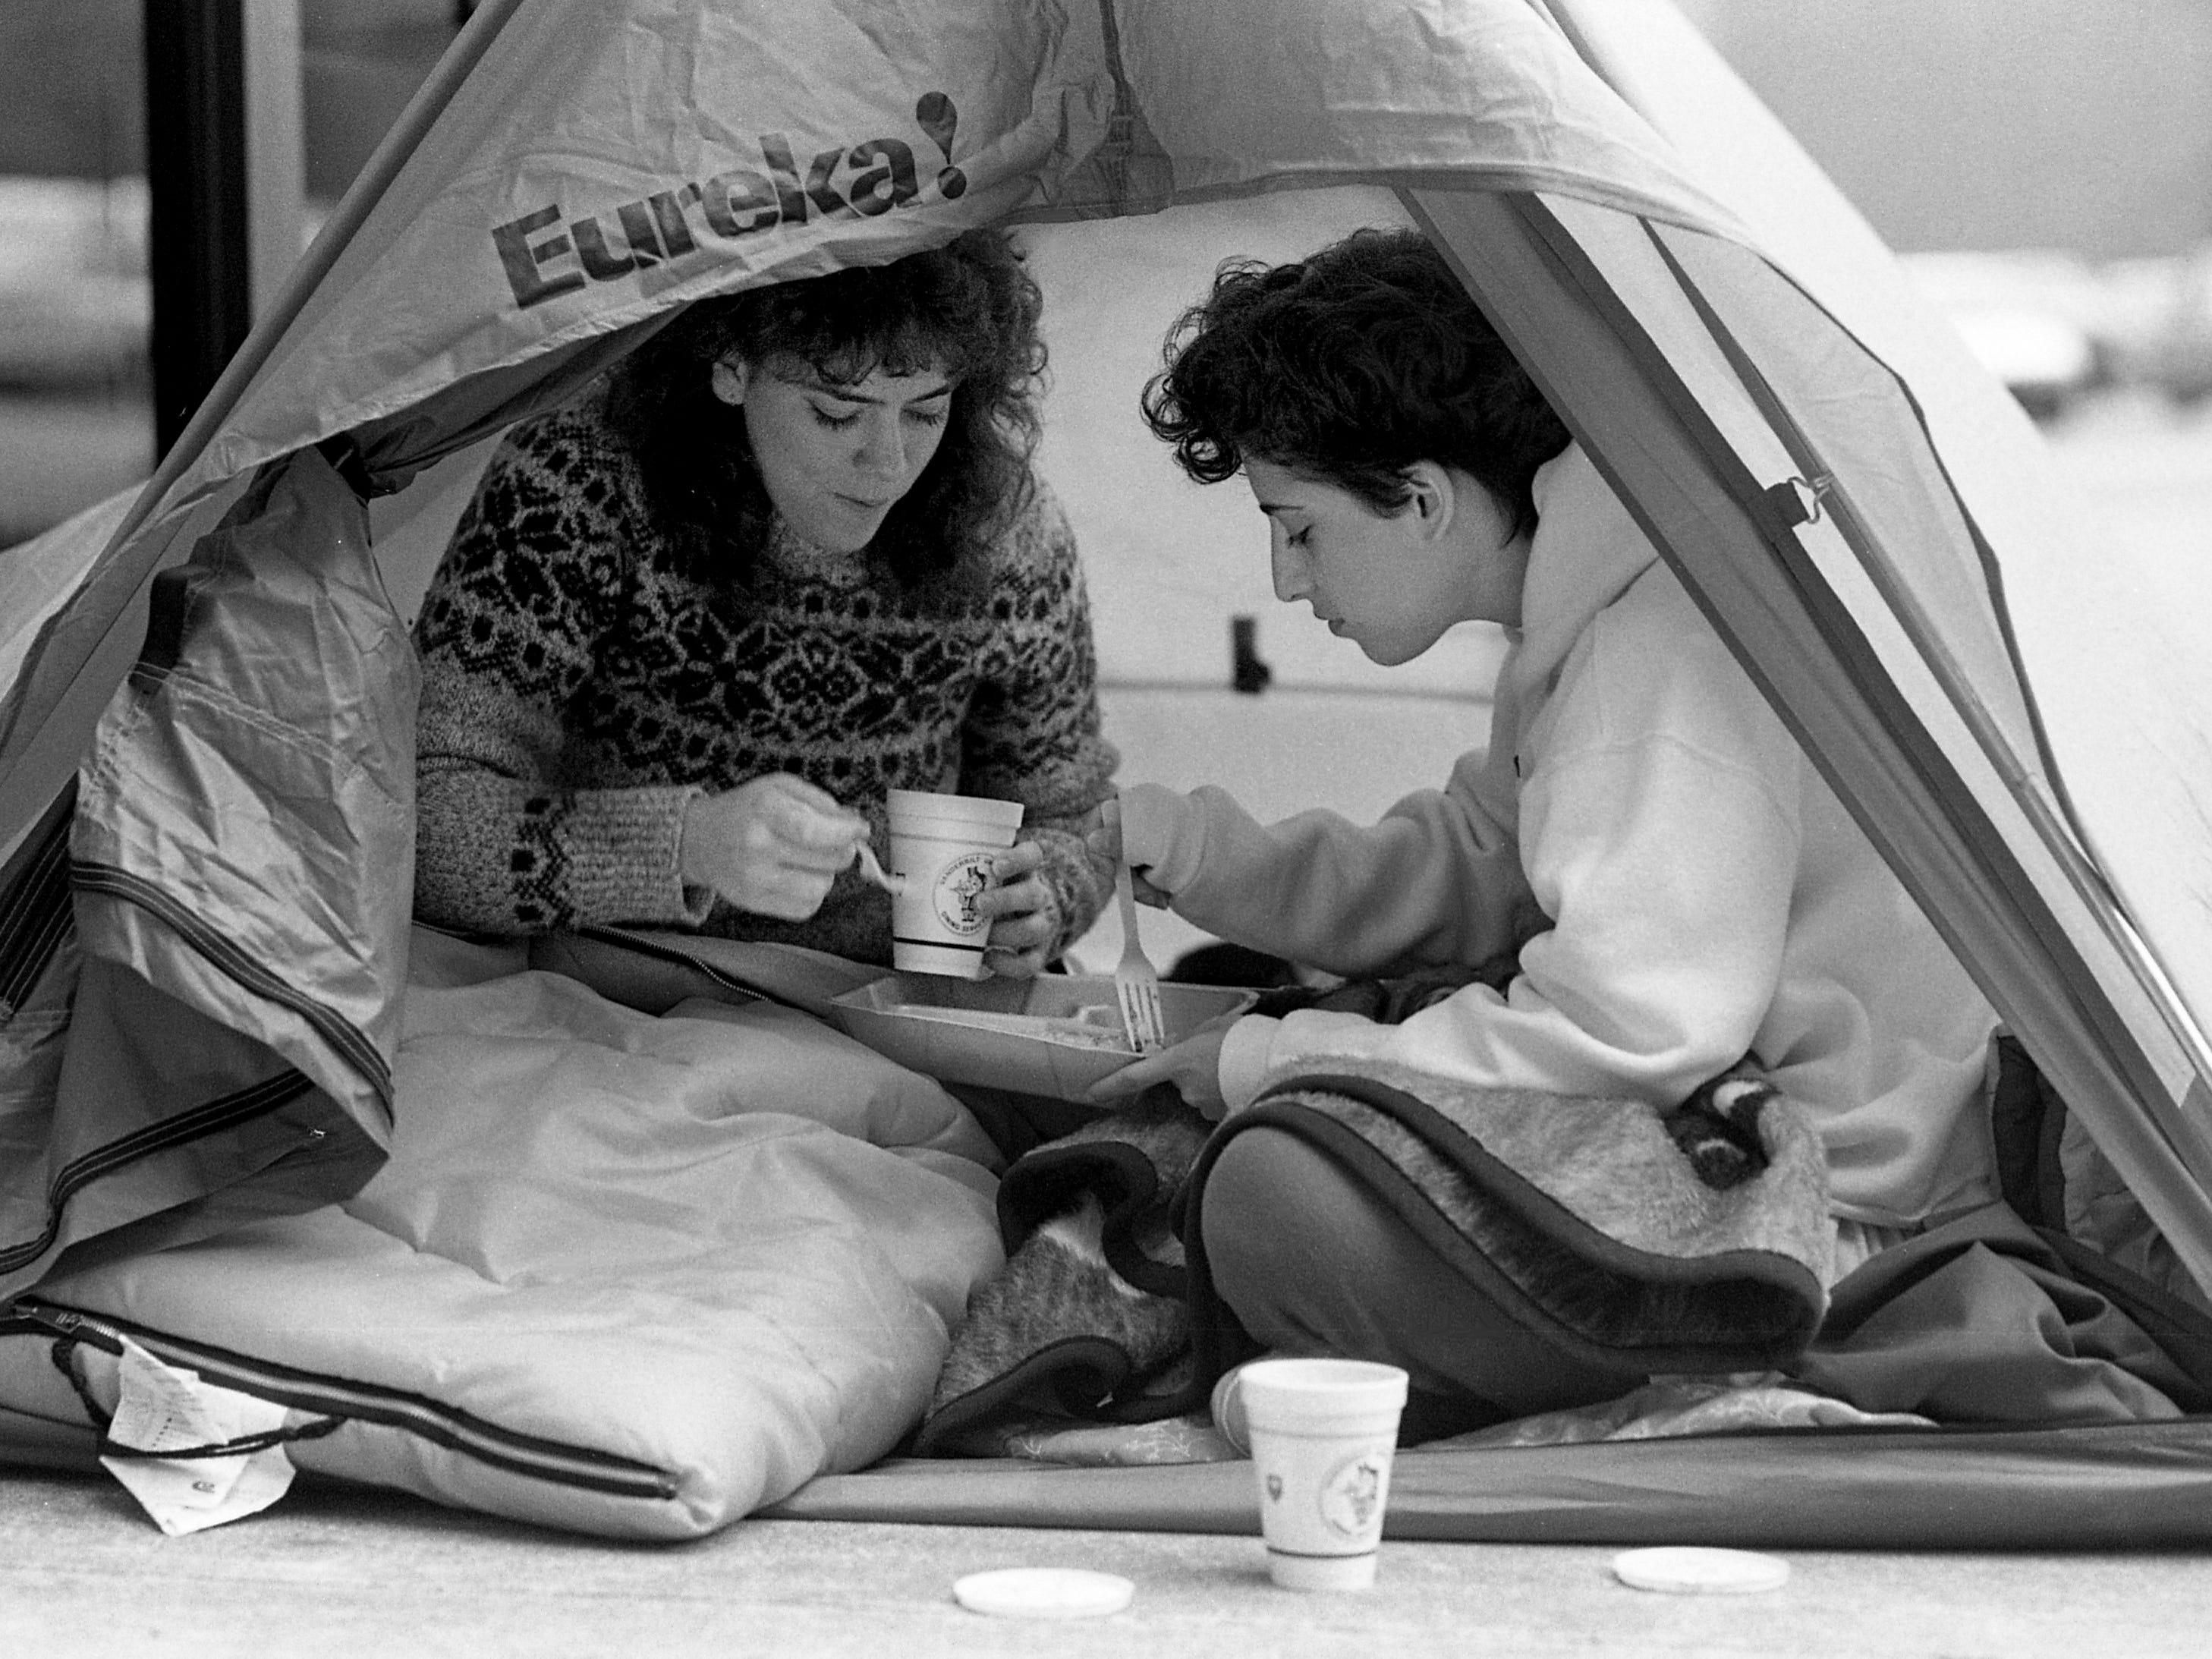 Vanderbilt juniors Pam Peck, left, and Laureen Bastone, the first in line at Memorial Gym on Feb. 4, 1989, eat breakfast while waiting for tickets for the Vanderbilt vs. Kentucky game to go on sale the next day.